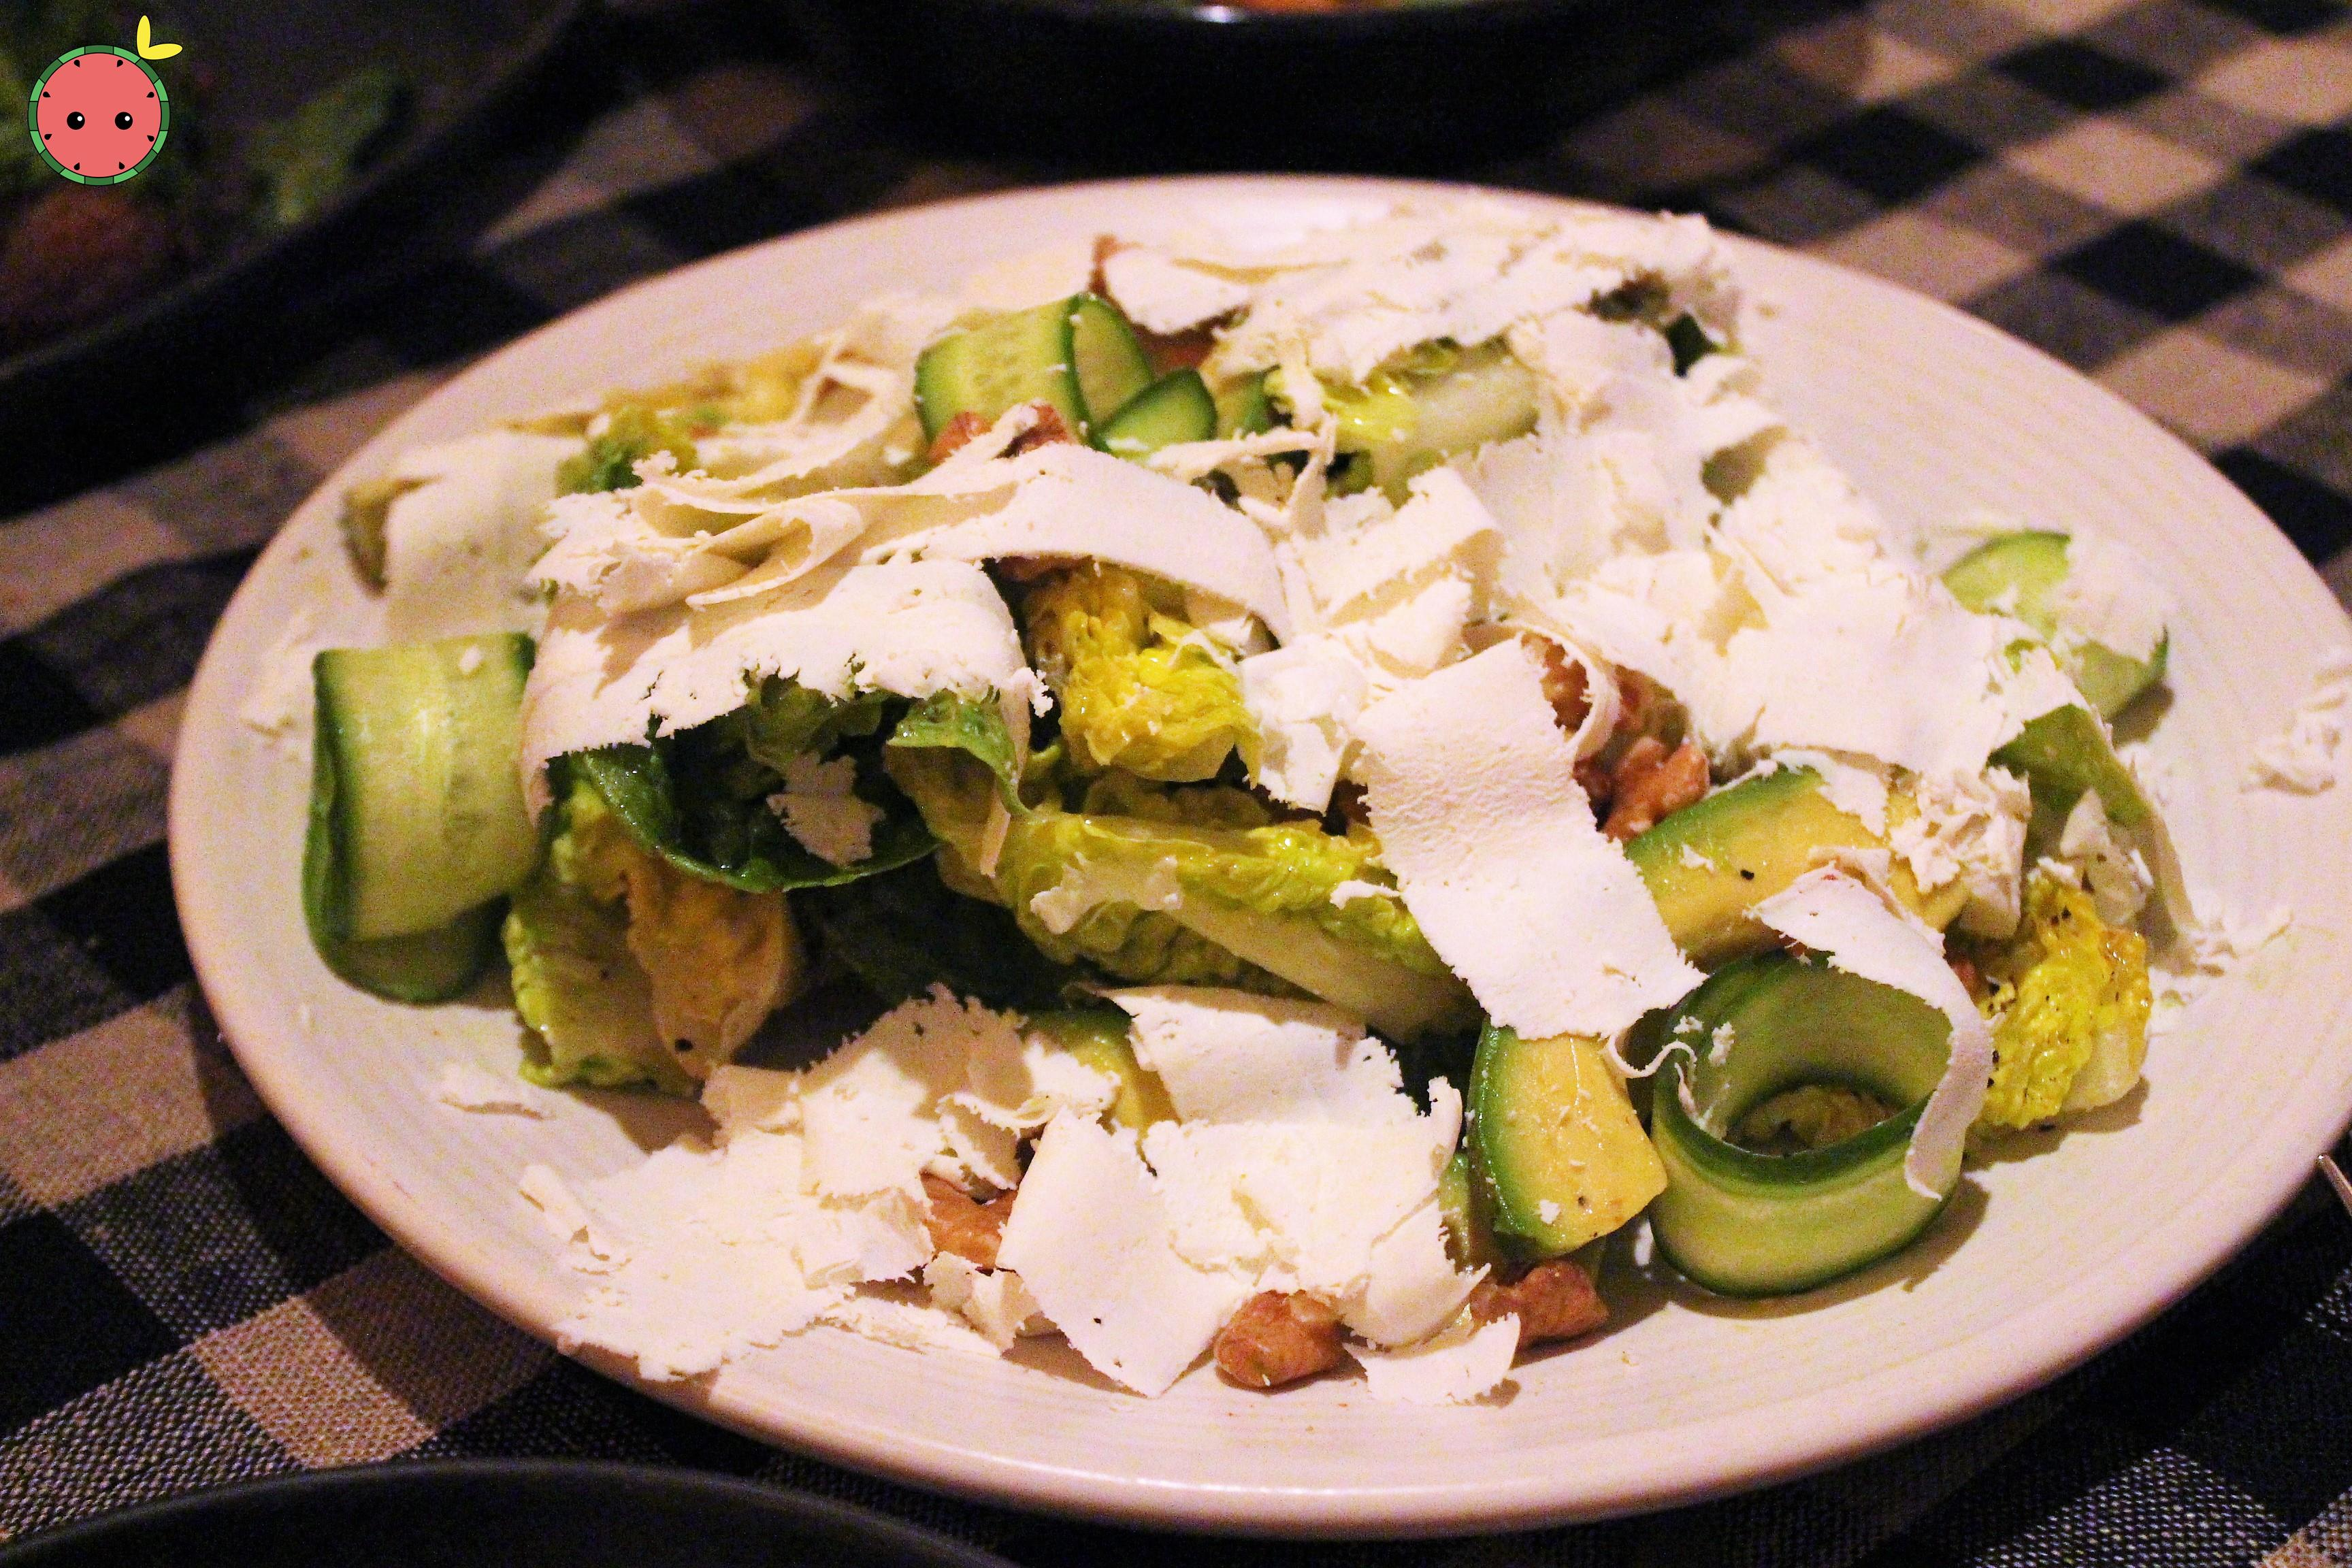 Little Gem Salad - Avocado, cucumber, ricotta salata & walnut vinaigrette